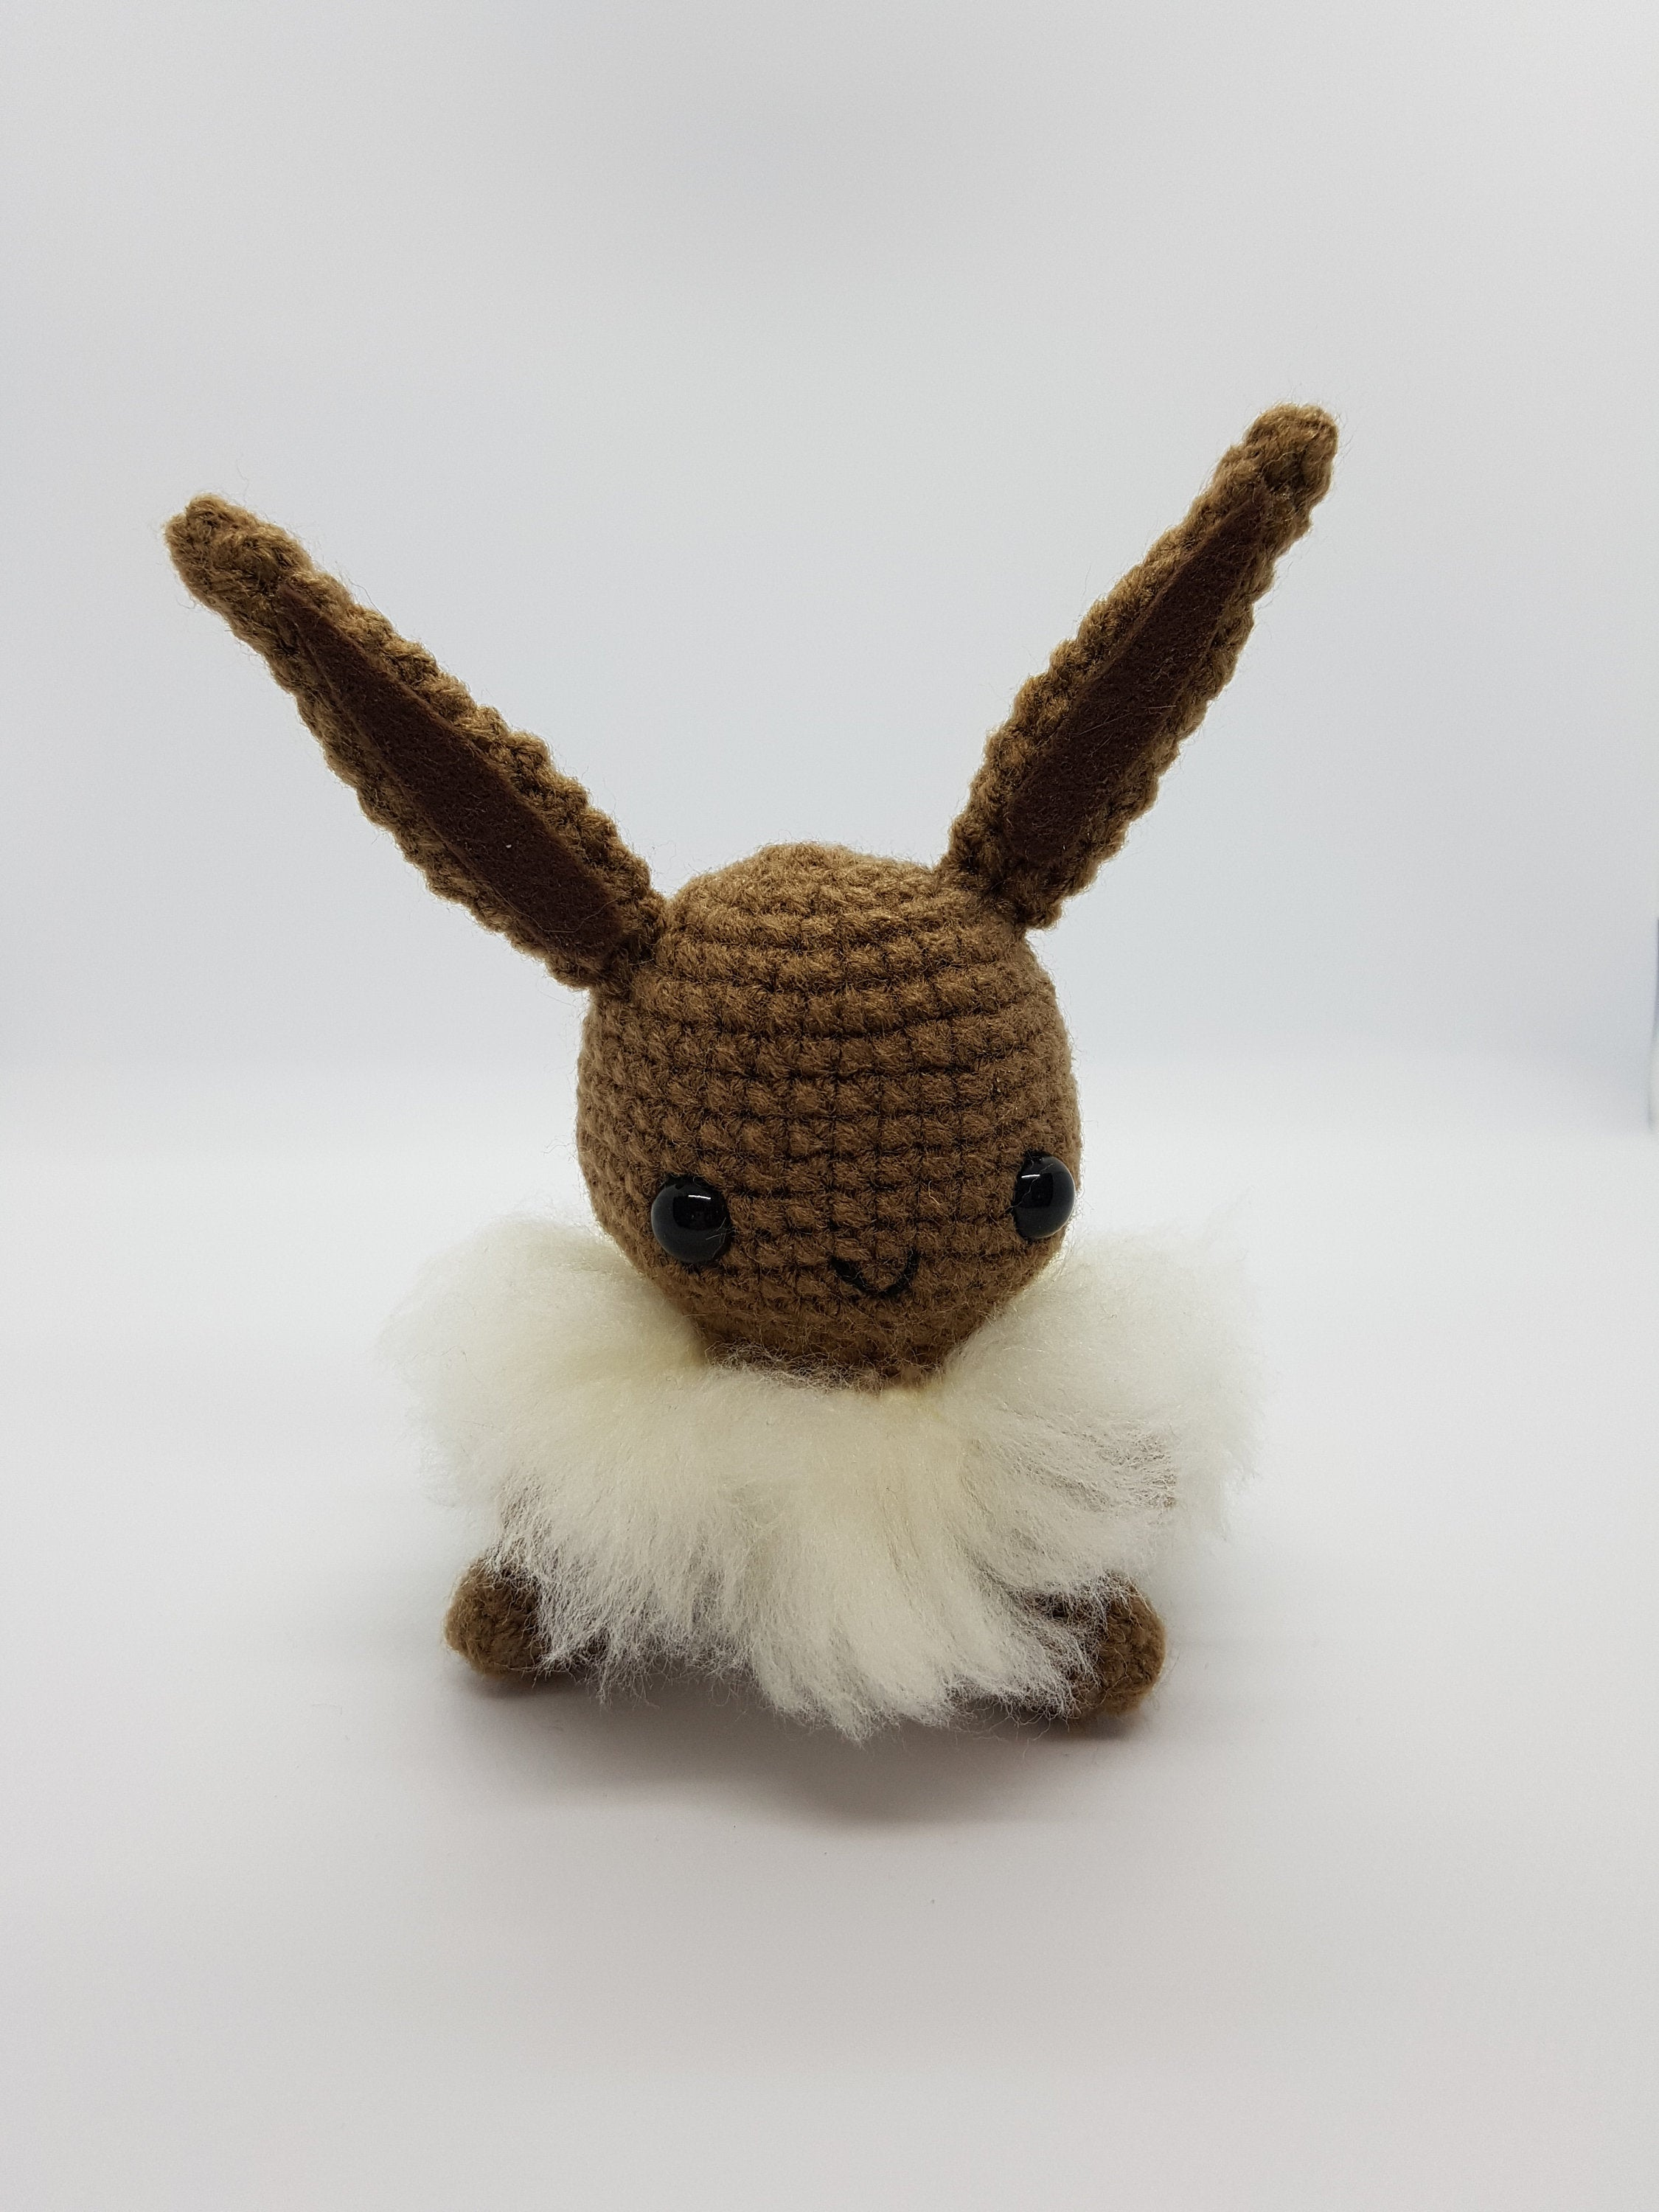 eevee the fluffy fox from pokemon